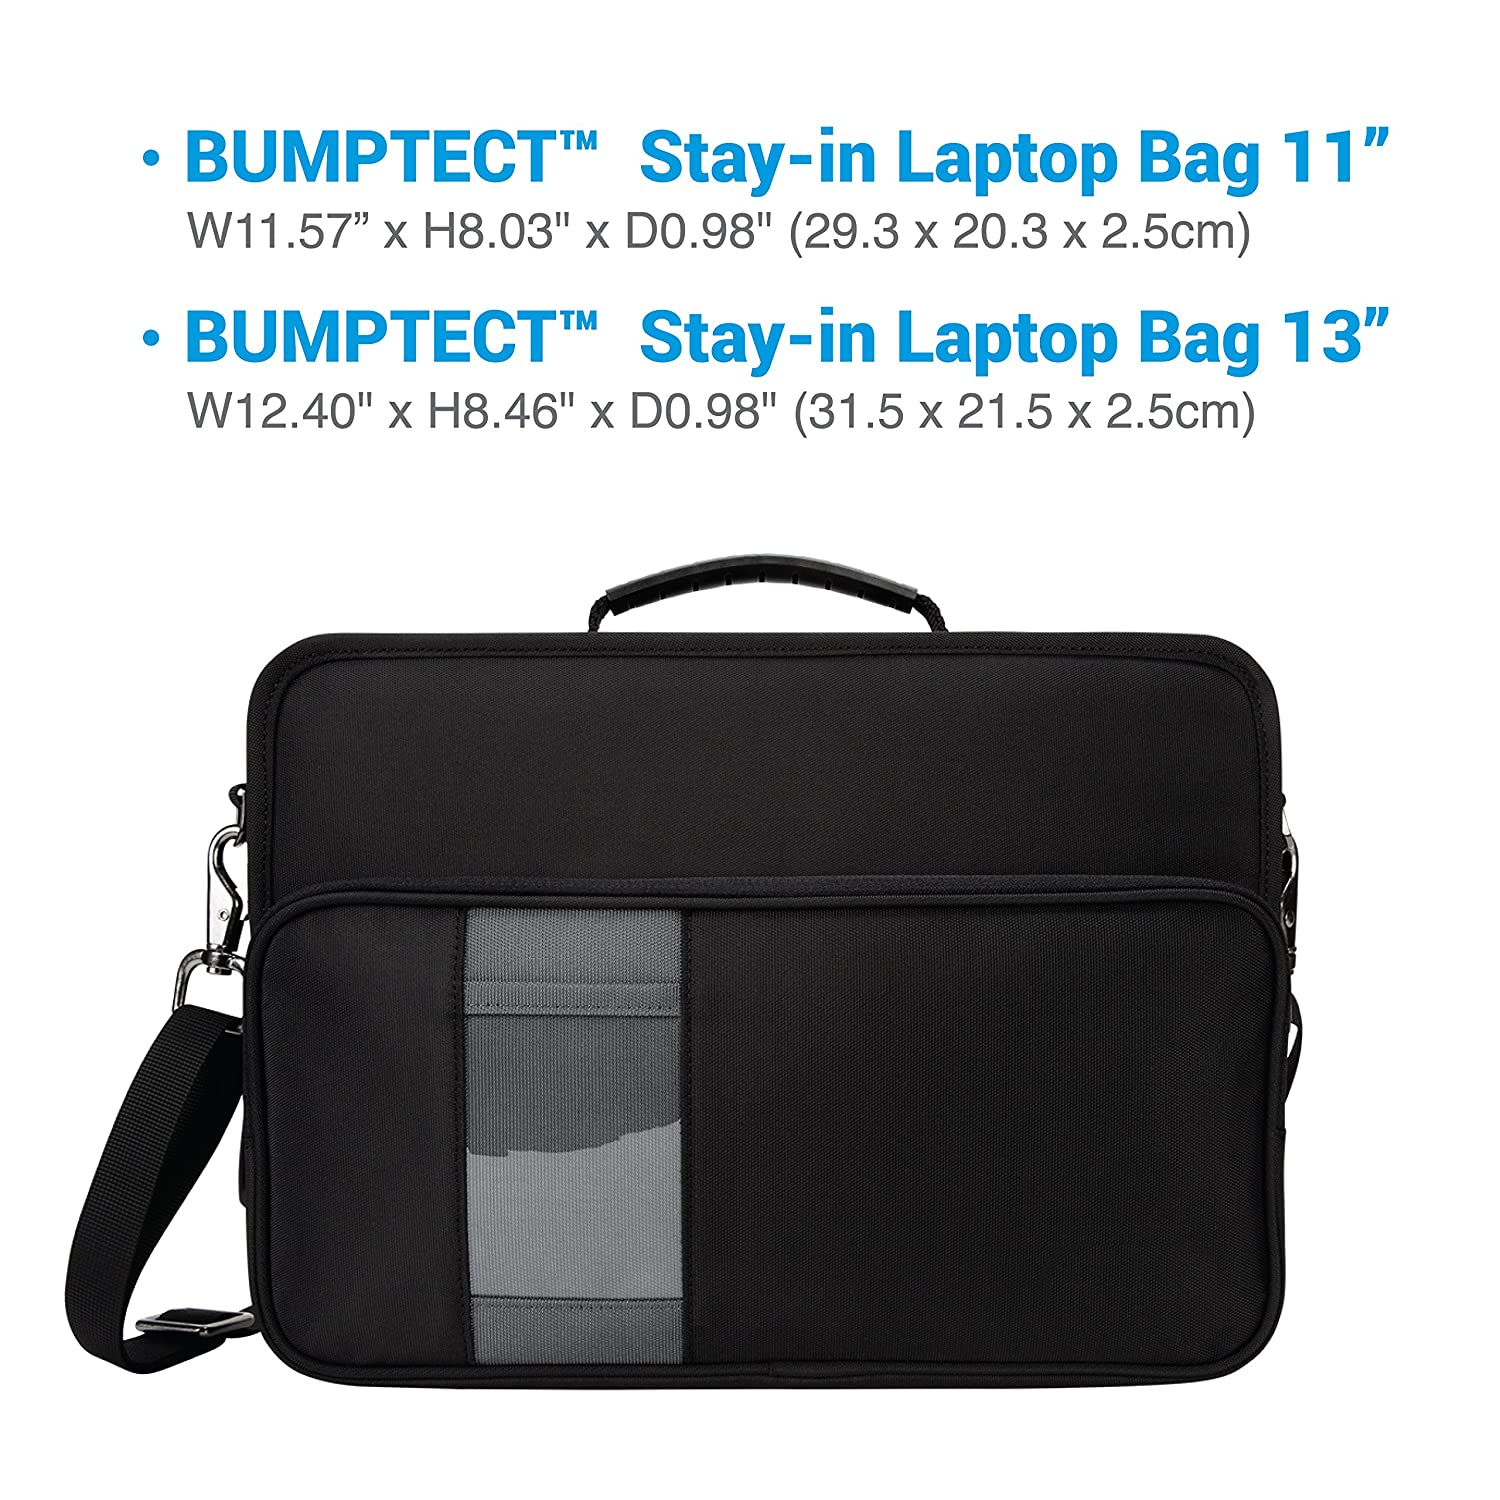 092608329bac iBenzer Bumptect Stay in 13 Inch Shockproof Protective Always On Laptop  Sleeve Case for 13.3 MacBook, Chromebook, Surface, Ultrabook, Black ...